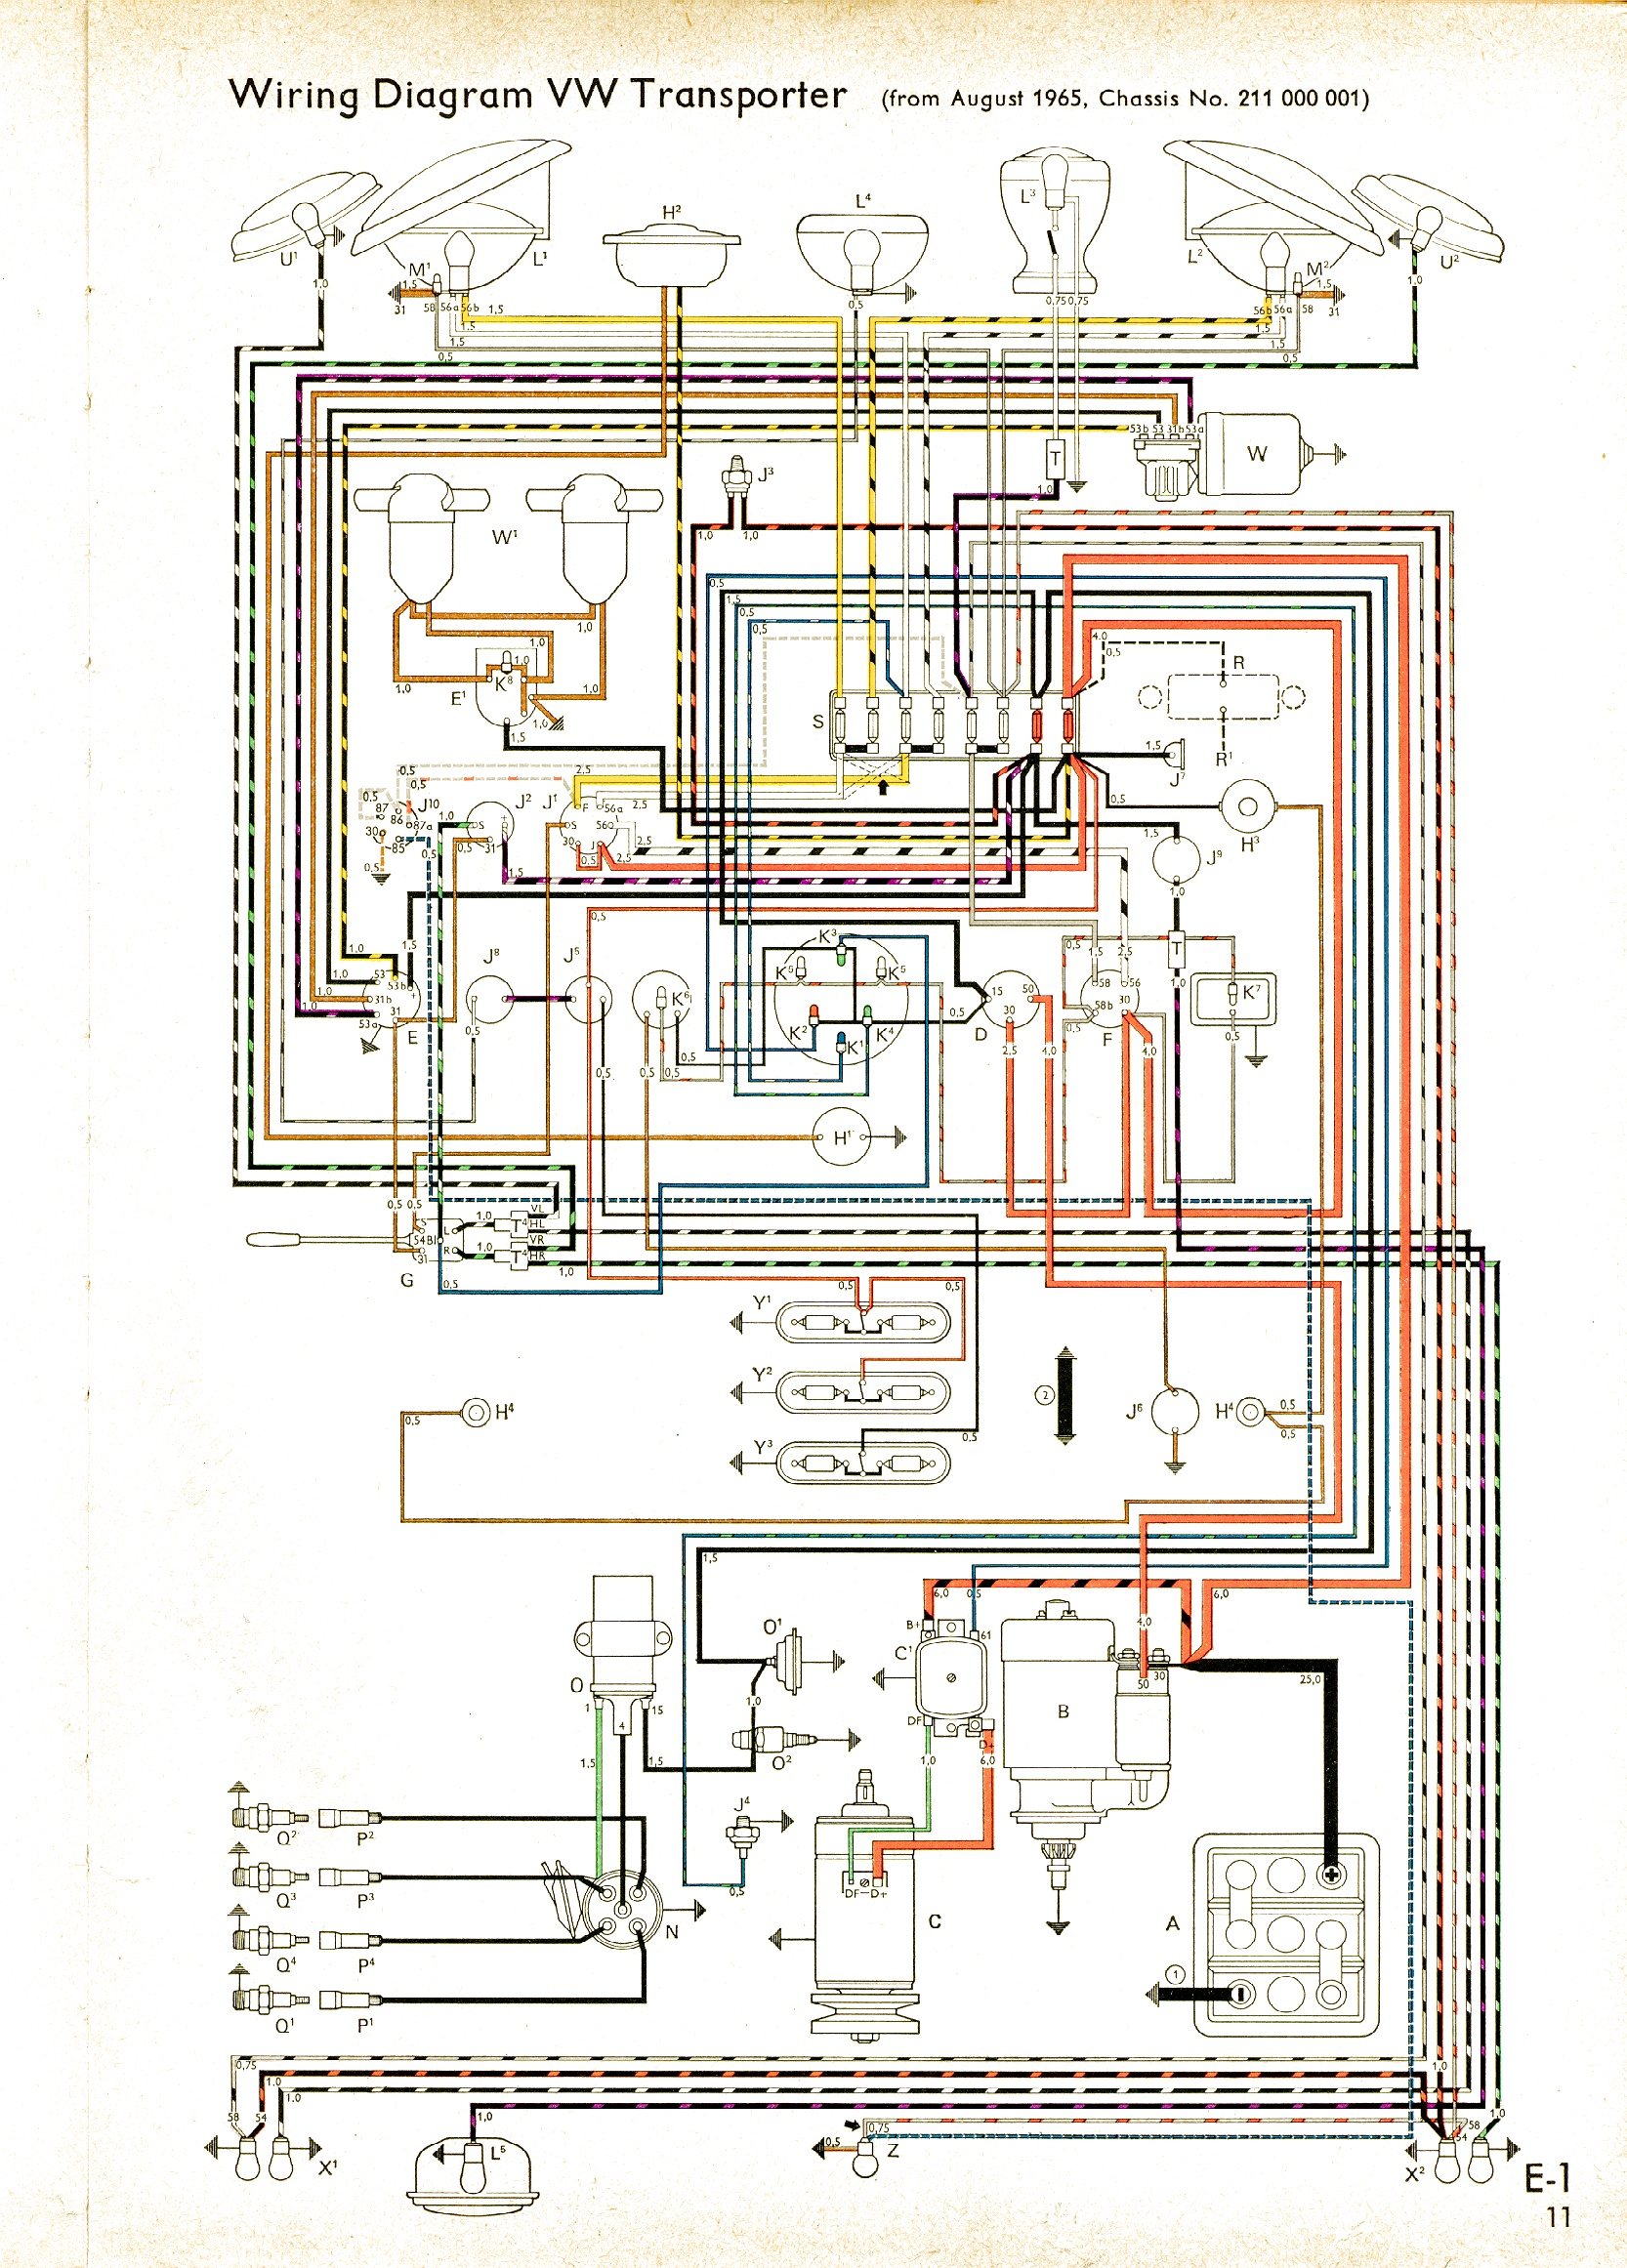 bus 65 vw wiring diagrams 1970 vw wiring diagram at mifinder.co